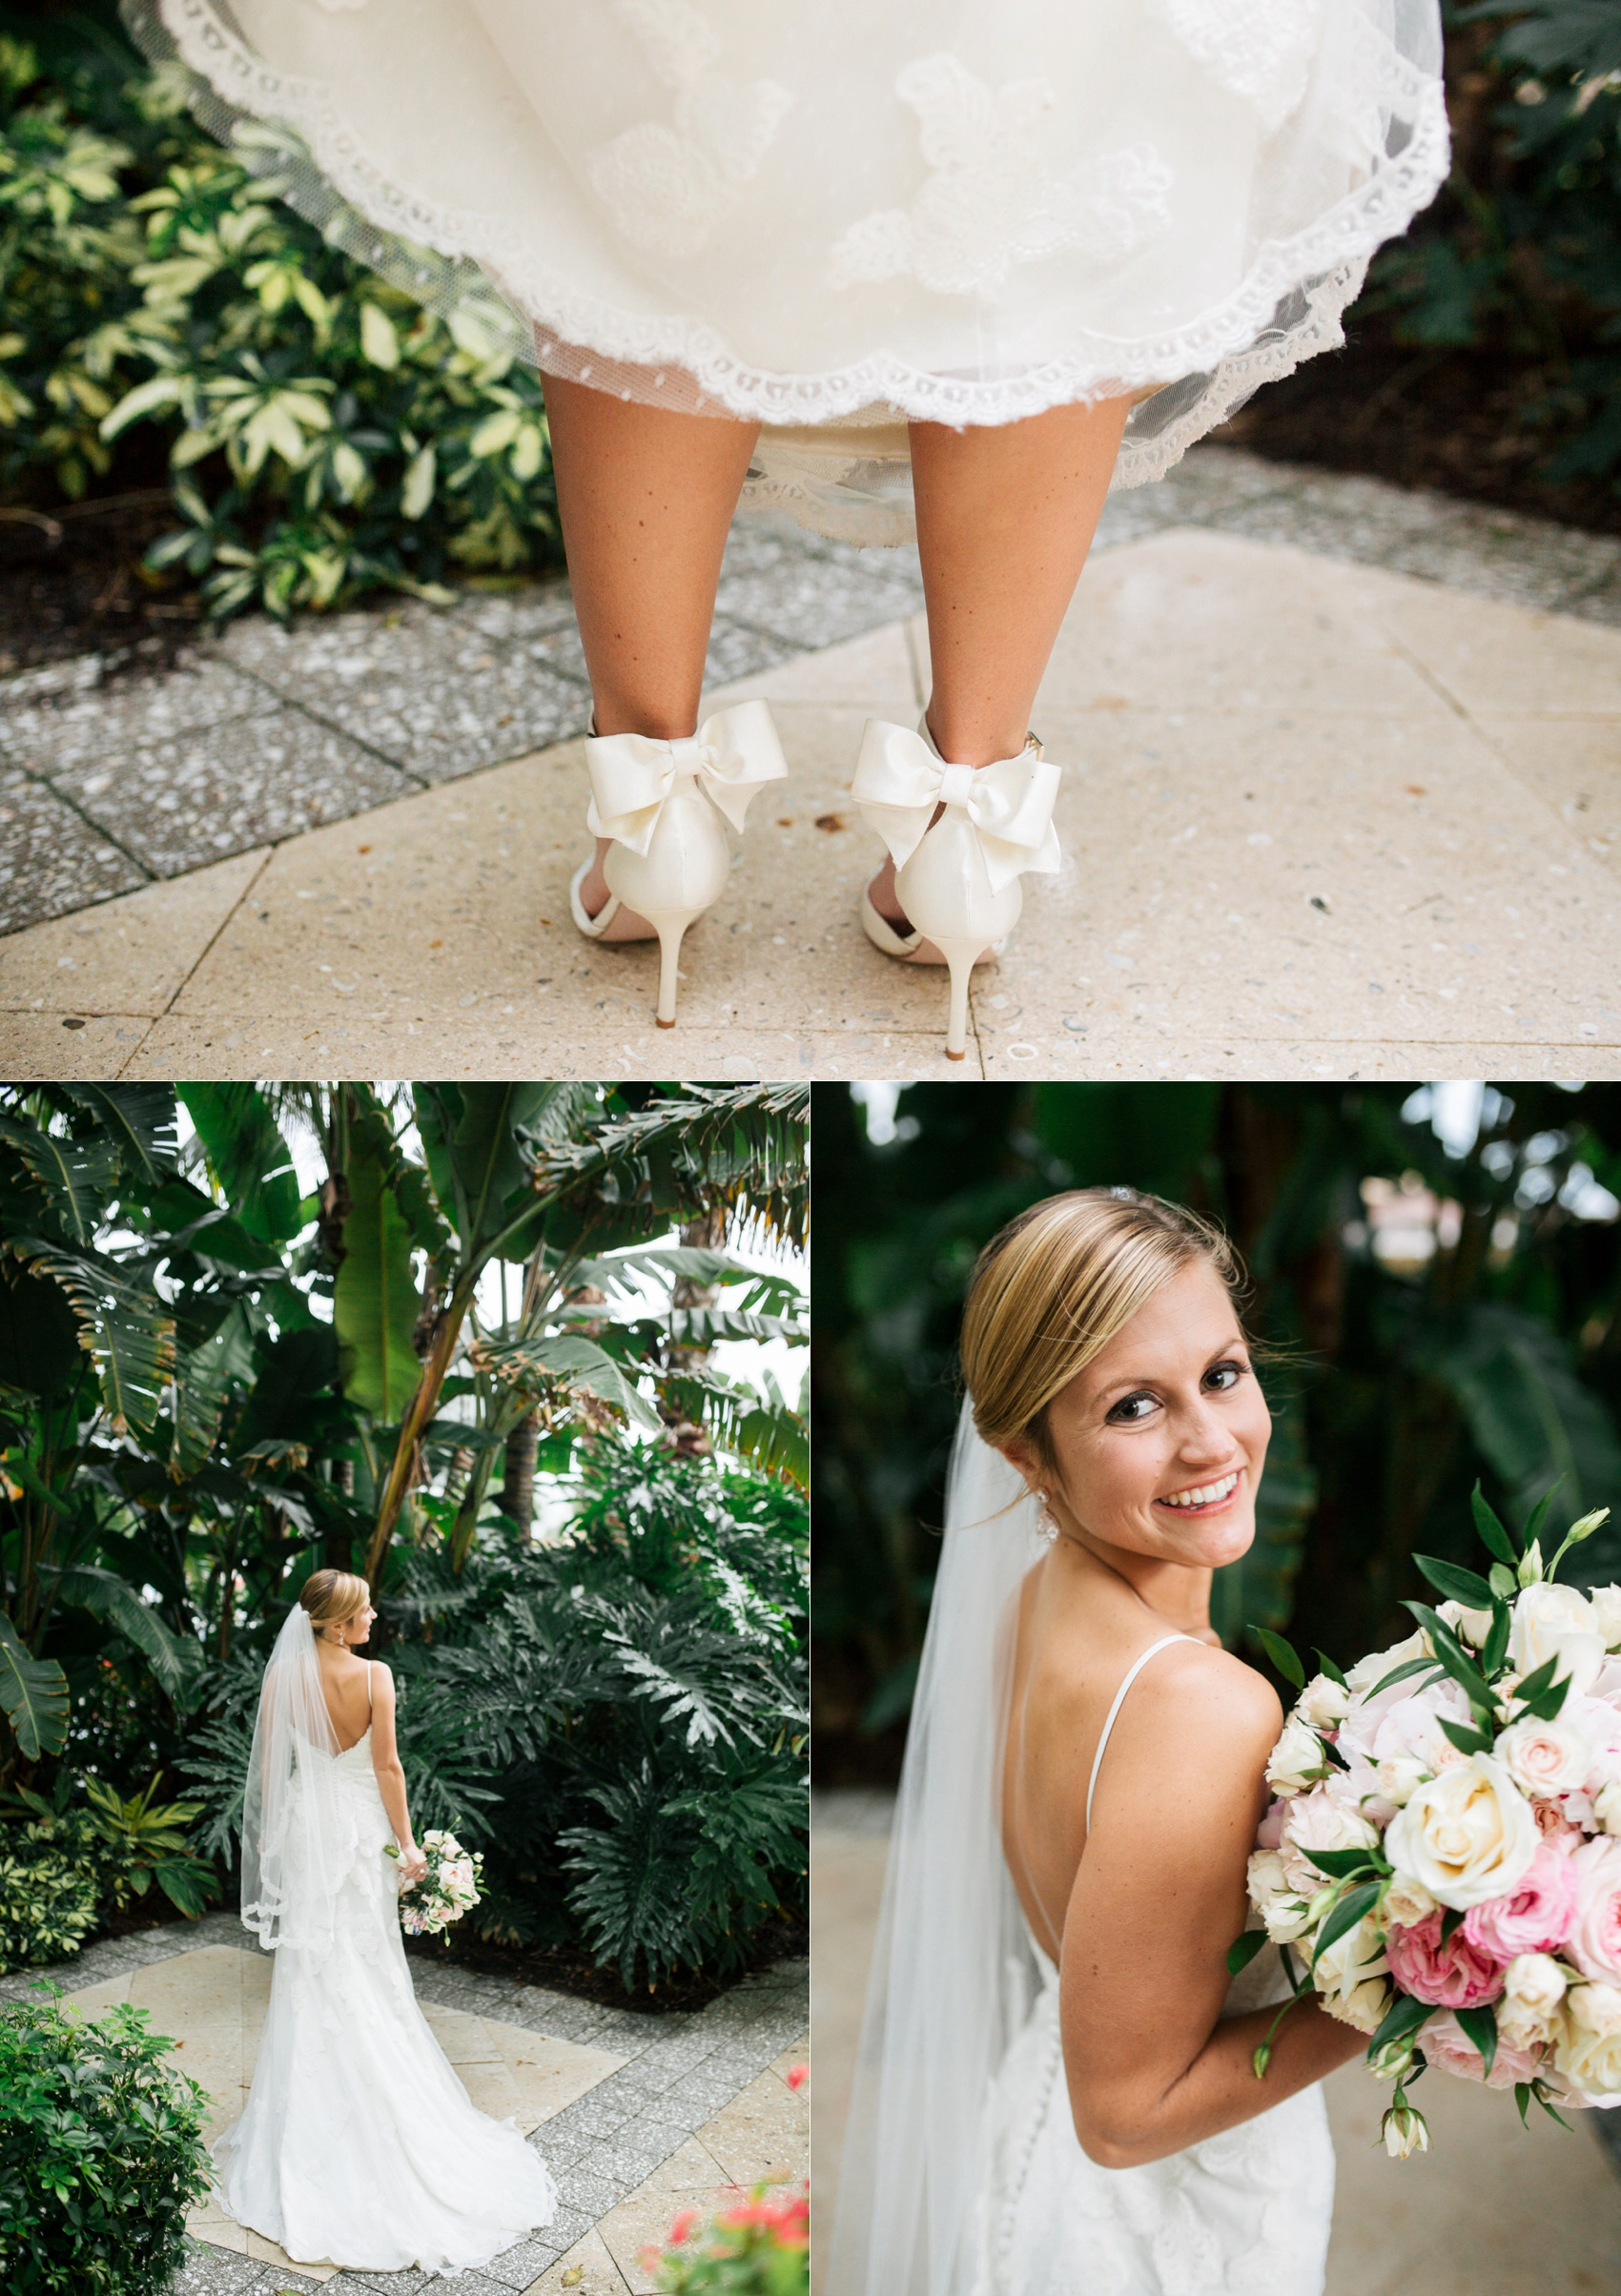 vero beach wedding alec lindsay-27